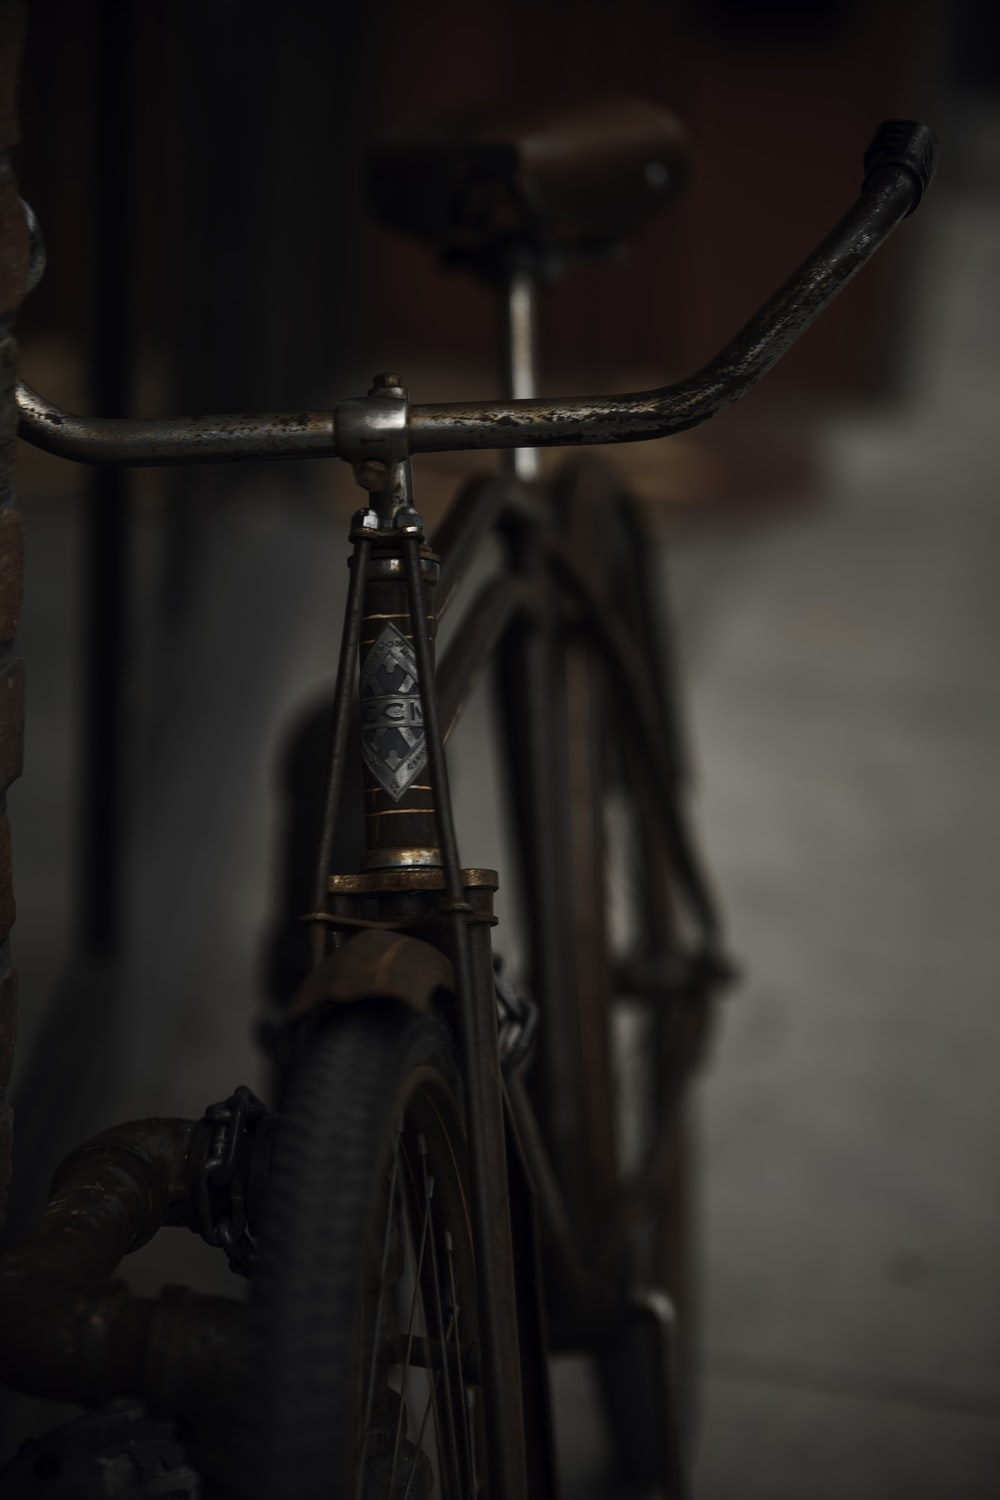 black bicycle with gold handle bar